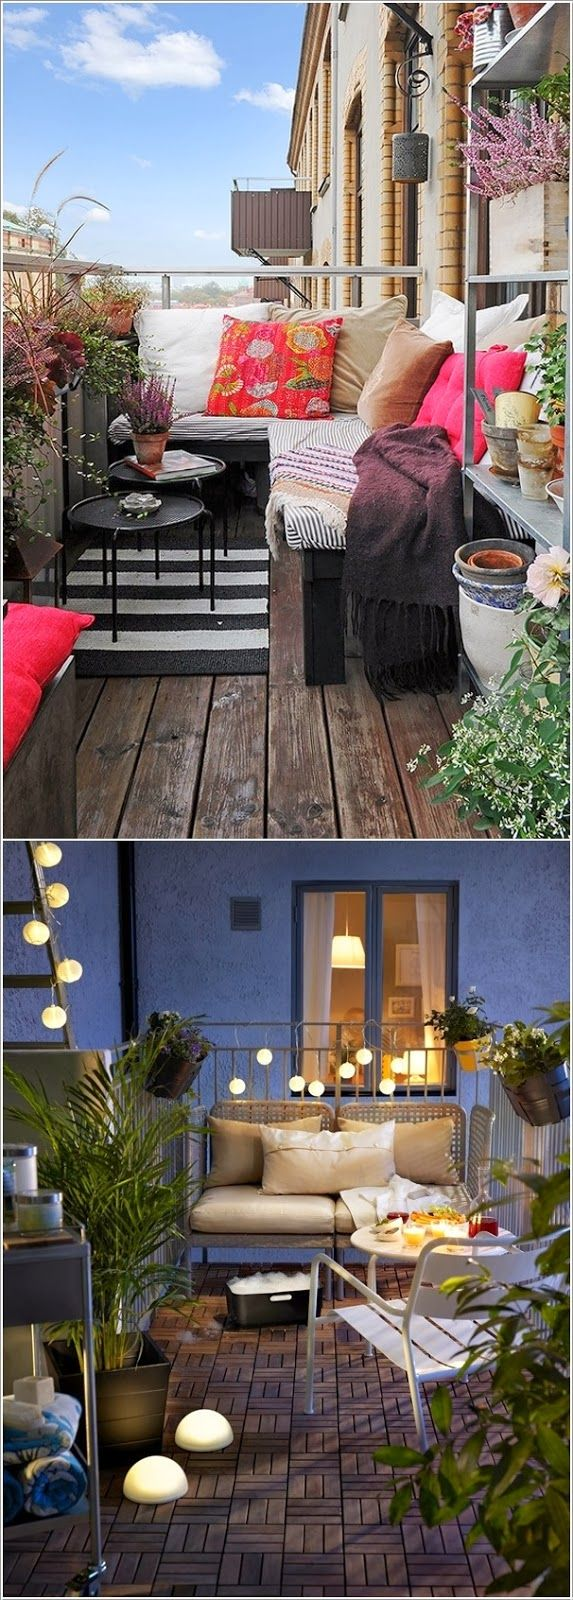 25 best ideas about cute small houses on pinterest small cottage homes small houses and for Comdecoration florale maison